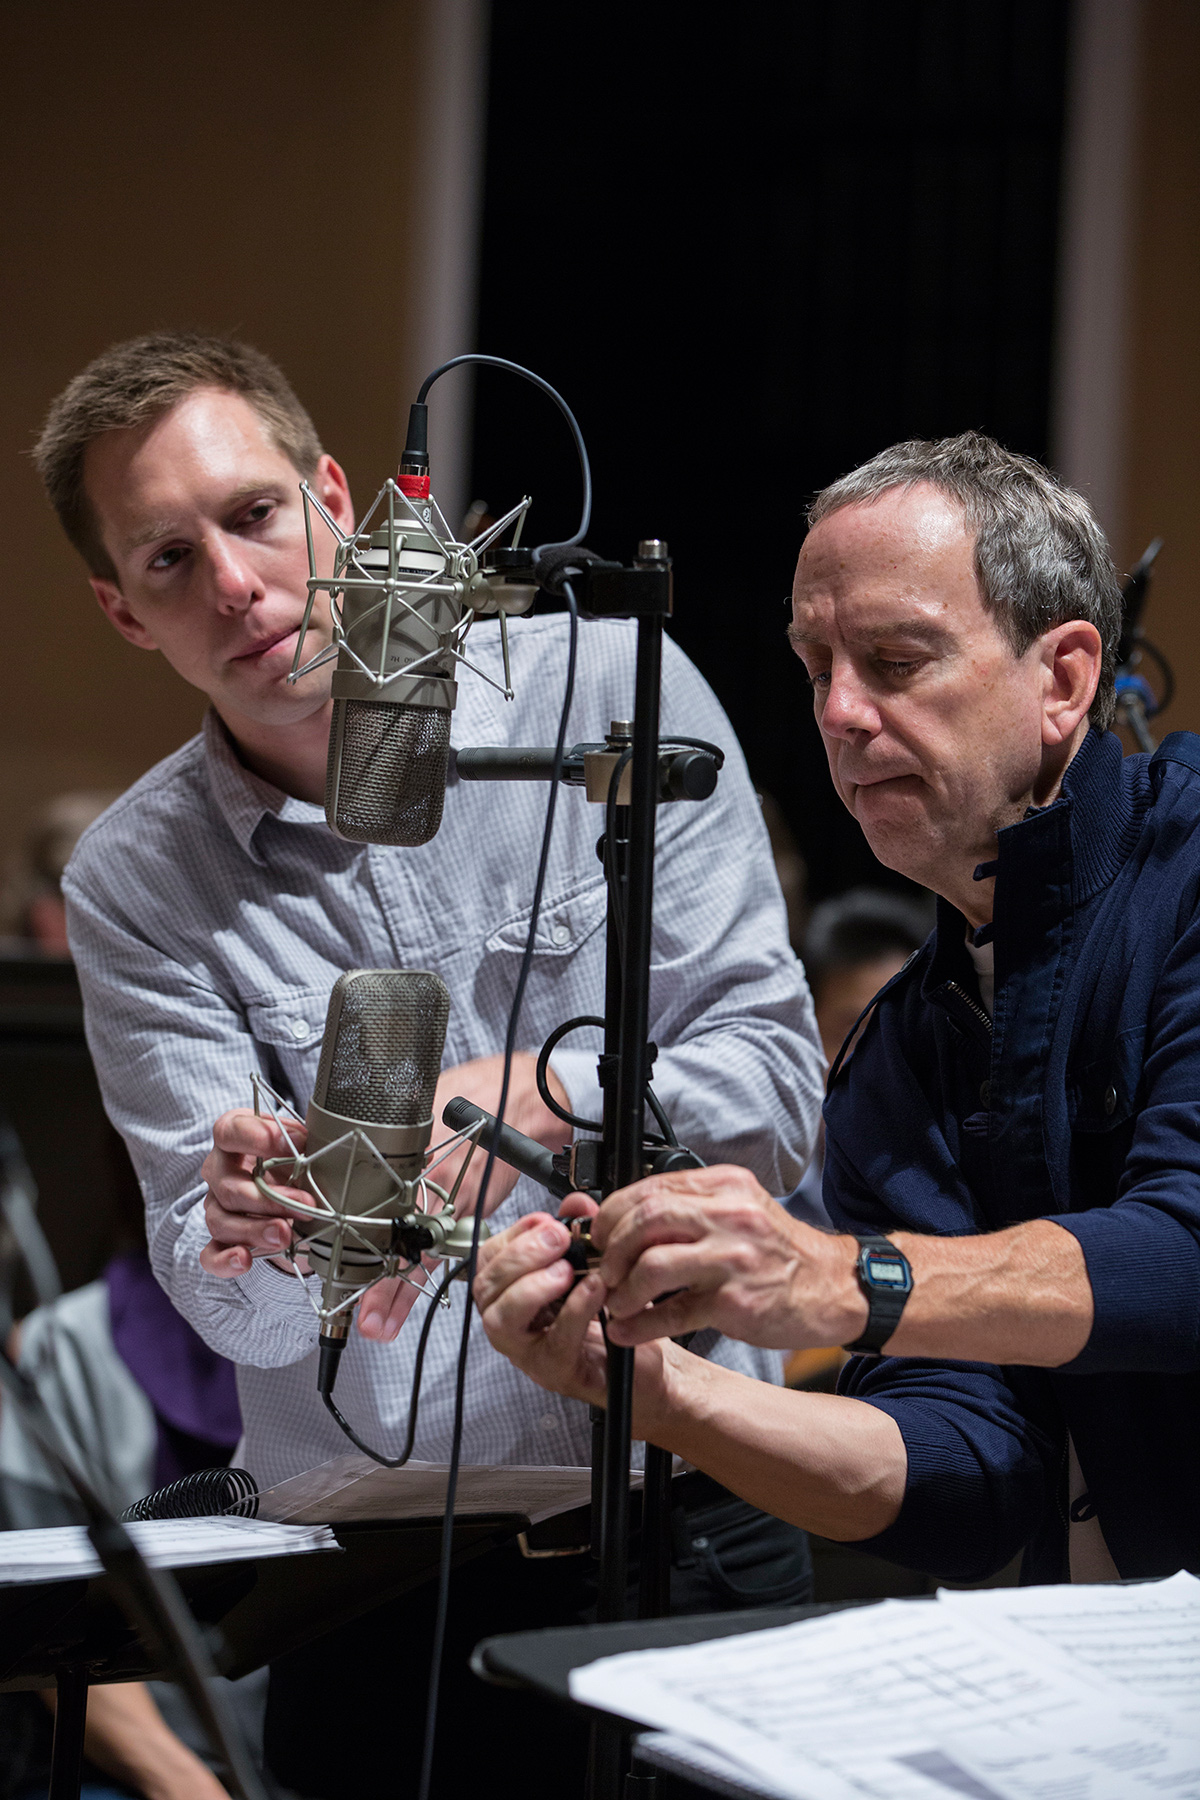 Brian Losch and Tim Martyn recording classical